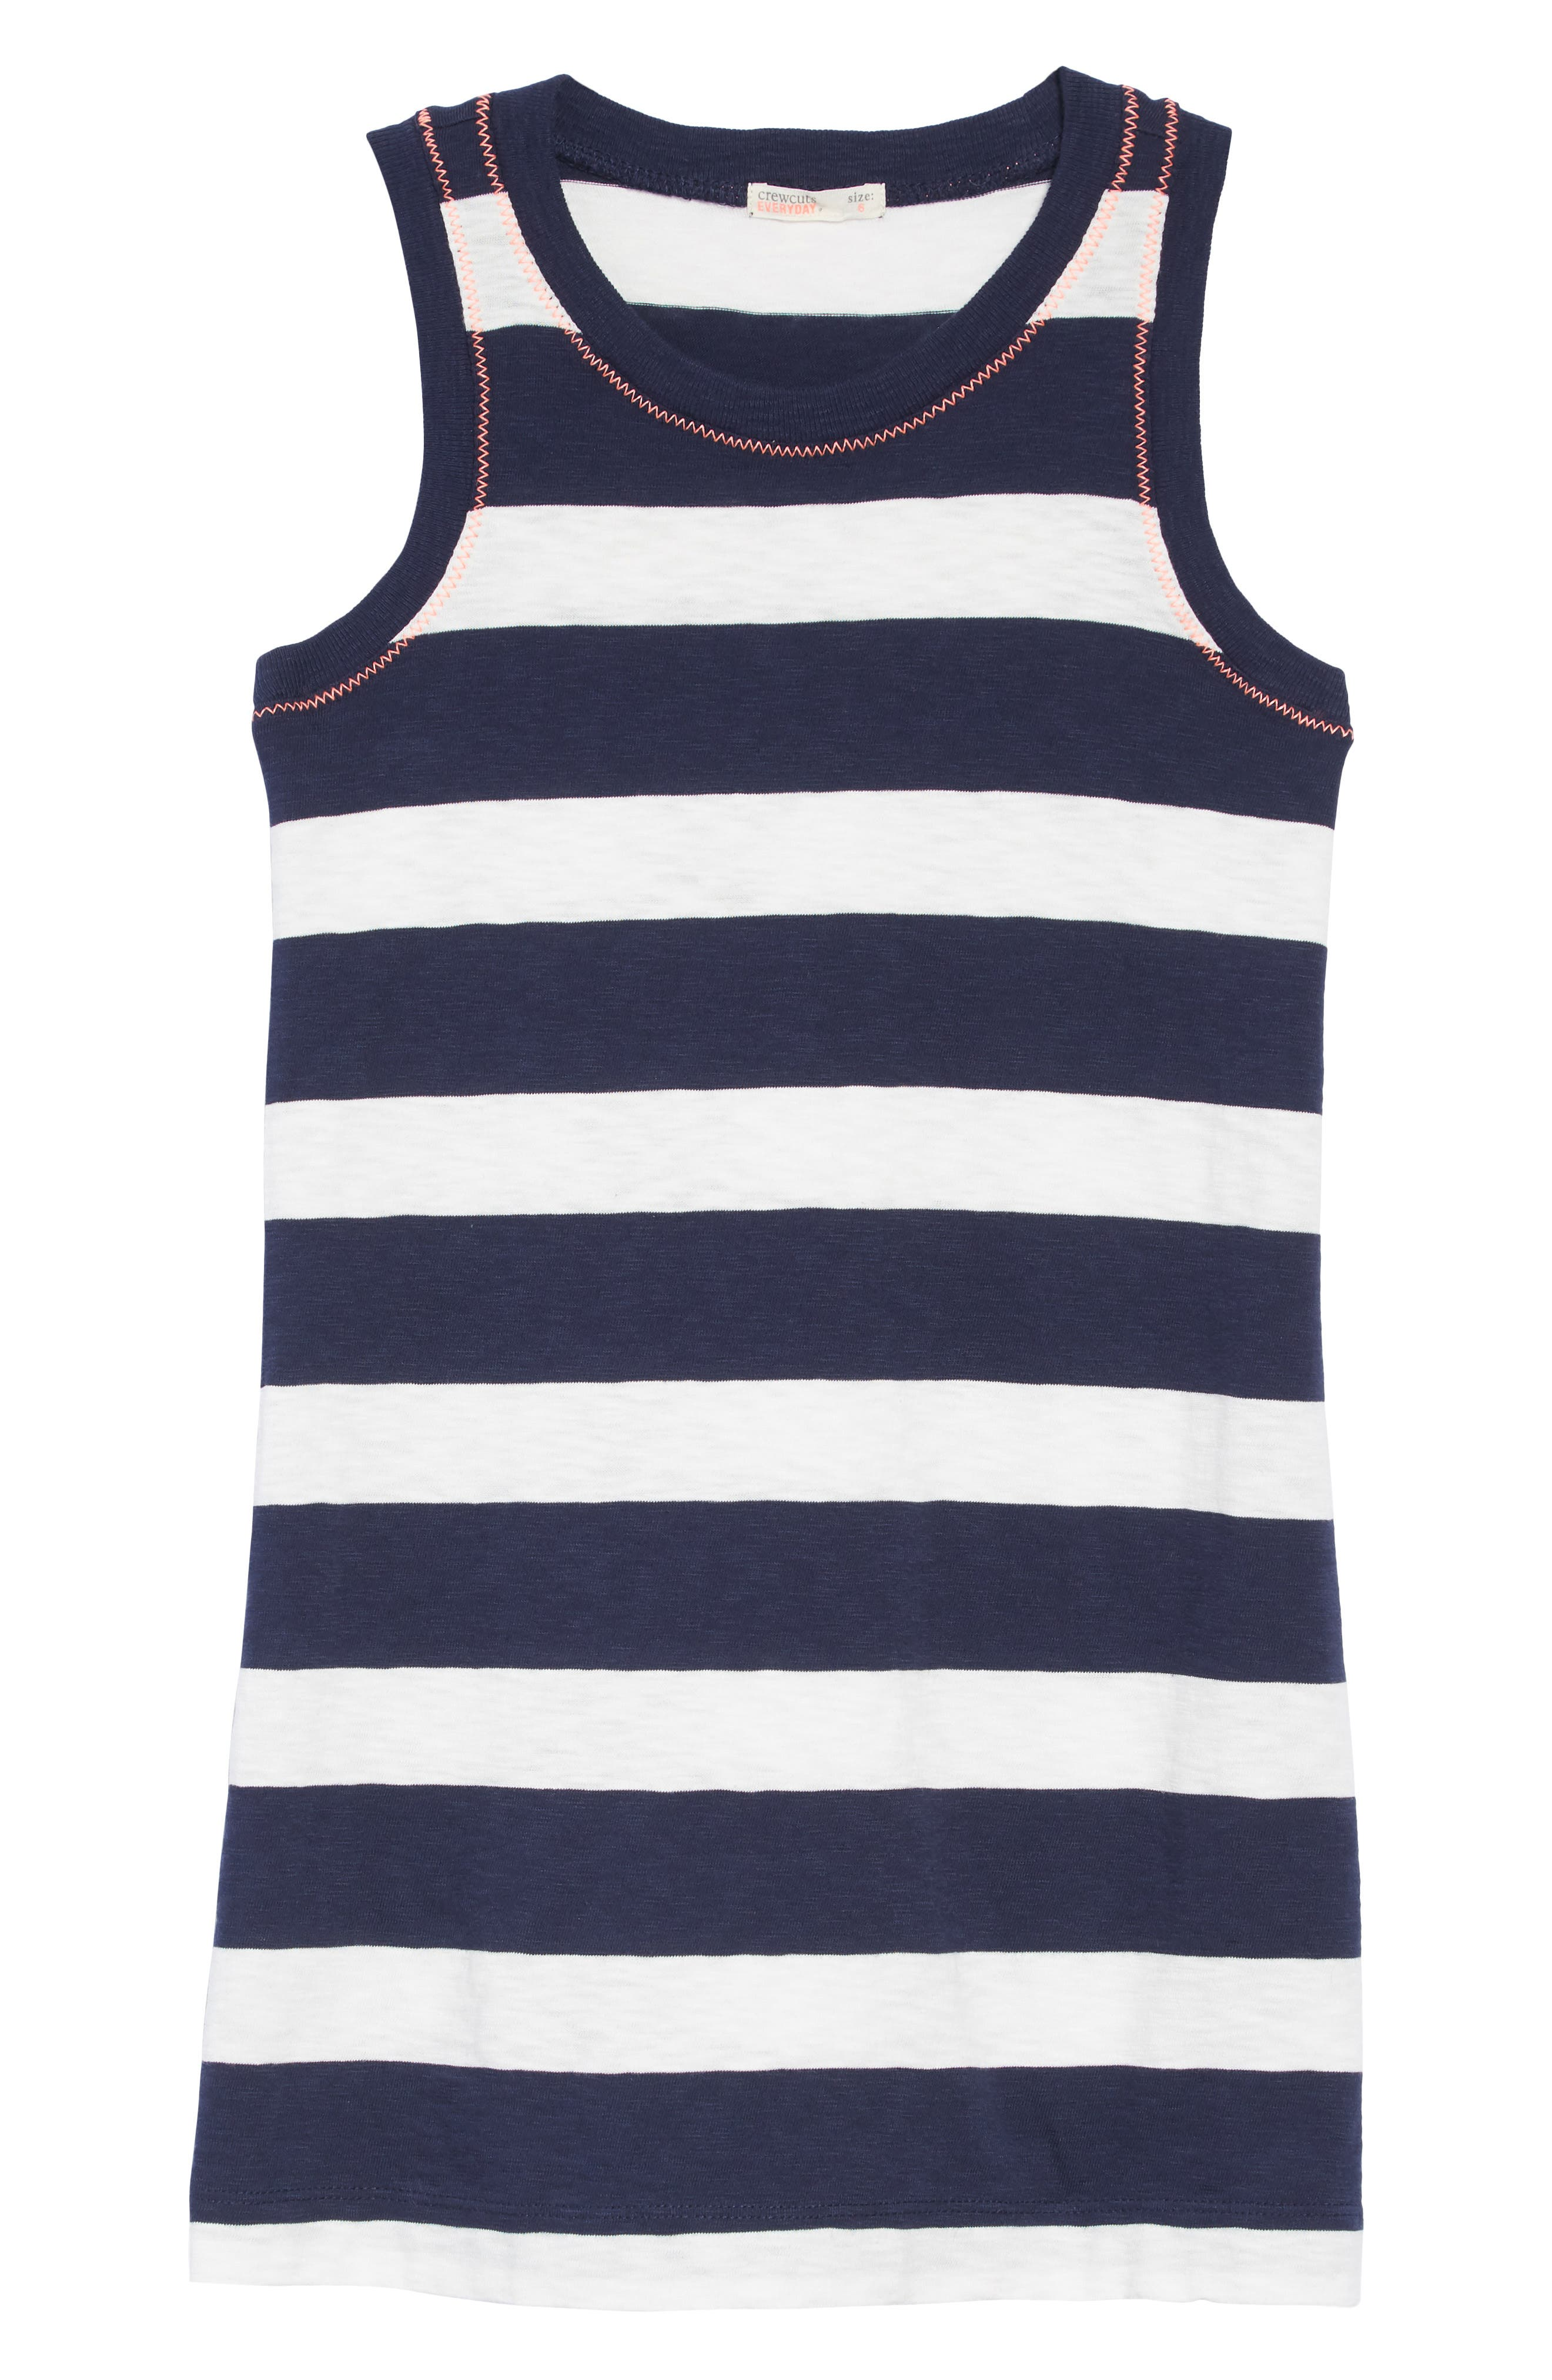 Rugby Stripe Dress,                             Main thumbnail 1, color,                             400